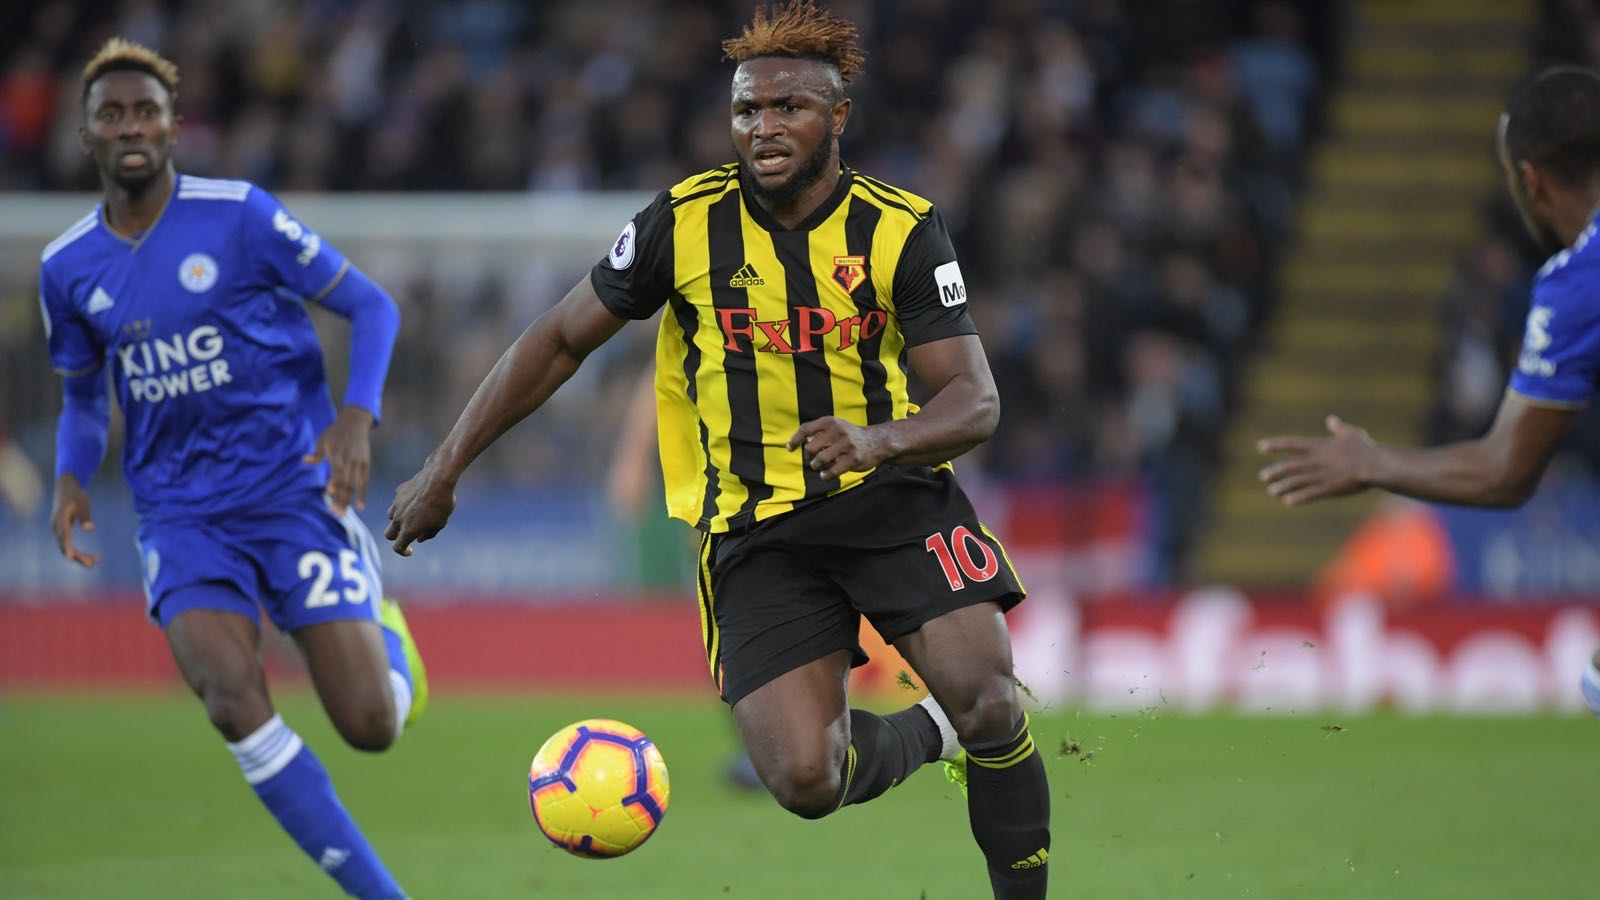 EPL: Ndidi, Success In Action As Leicester Pip Watford; Balogun, Iheanacho Subbed On